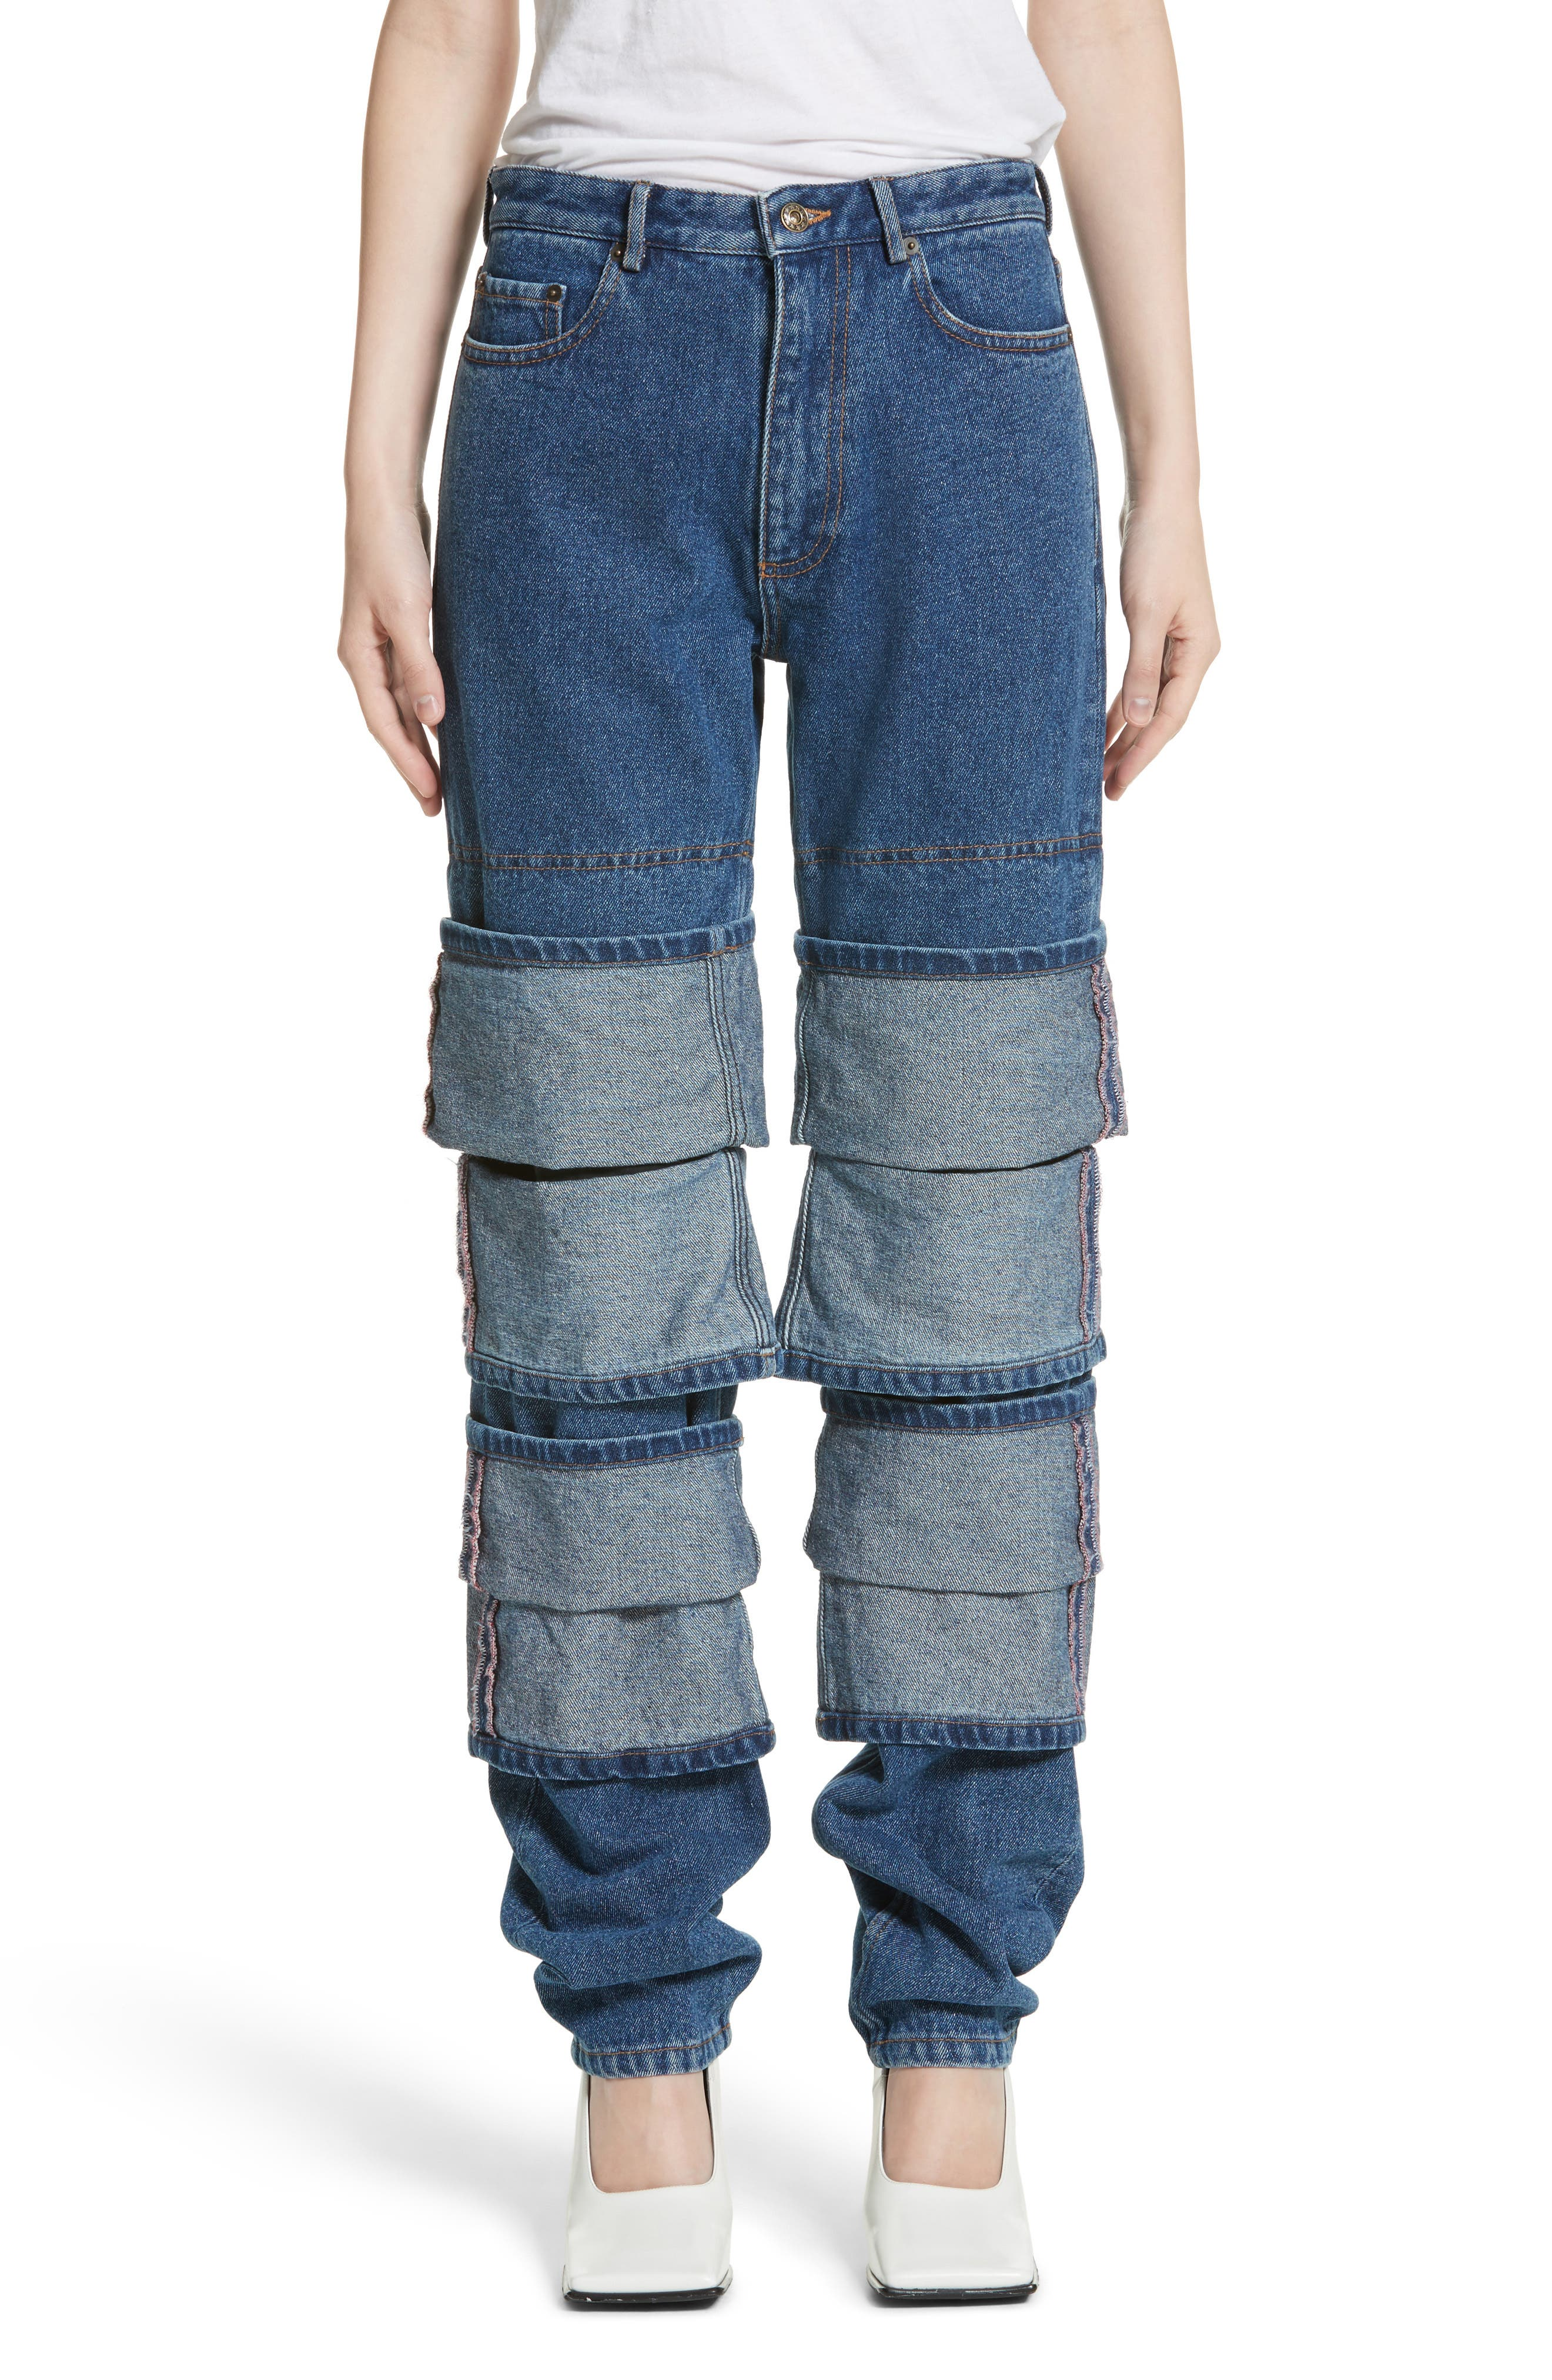 Y/PROJECT Layered Cuff Jeans